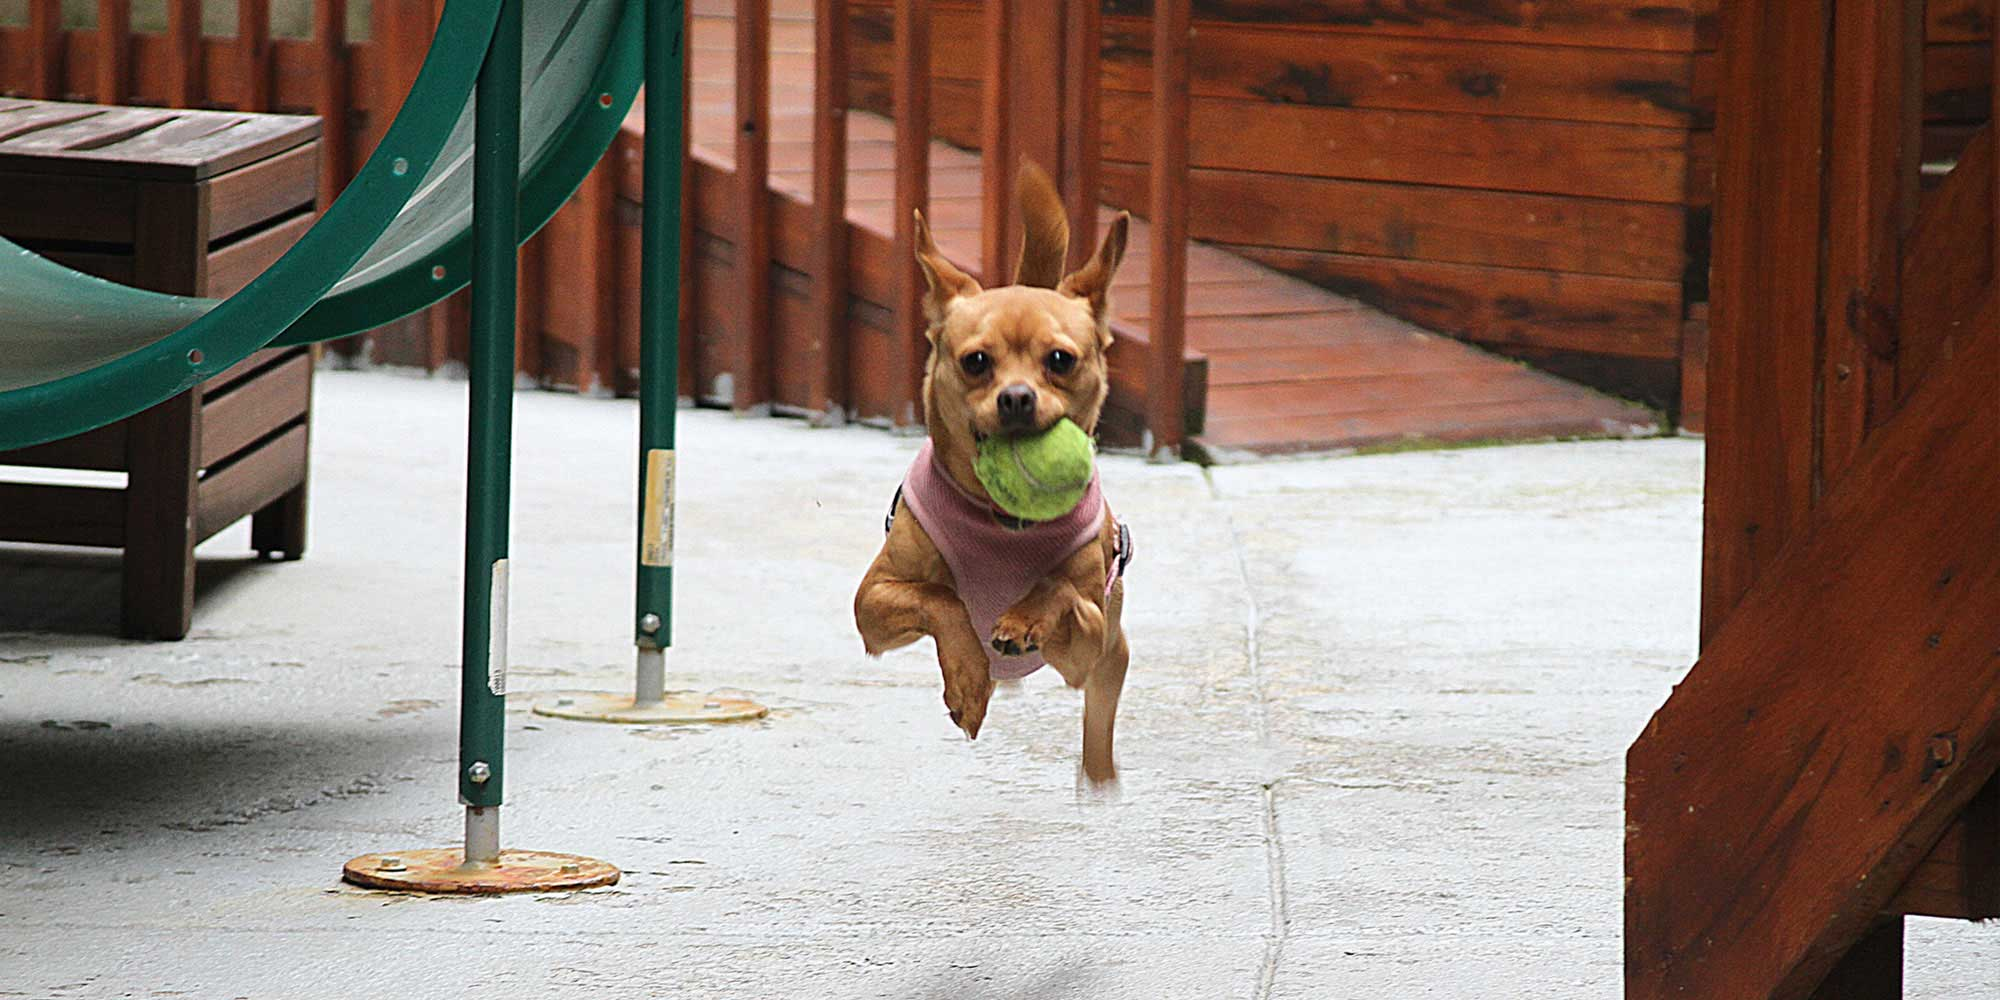 Dog Running Towards Camera with Ball